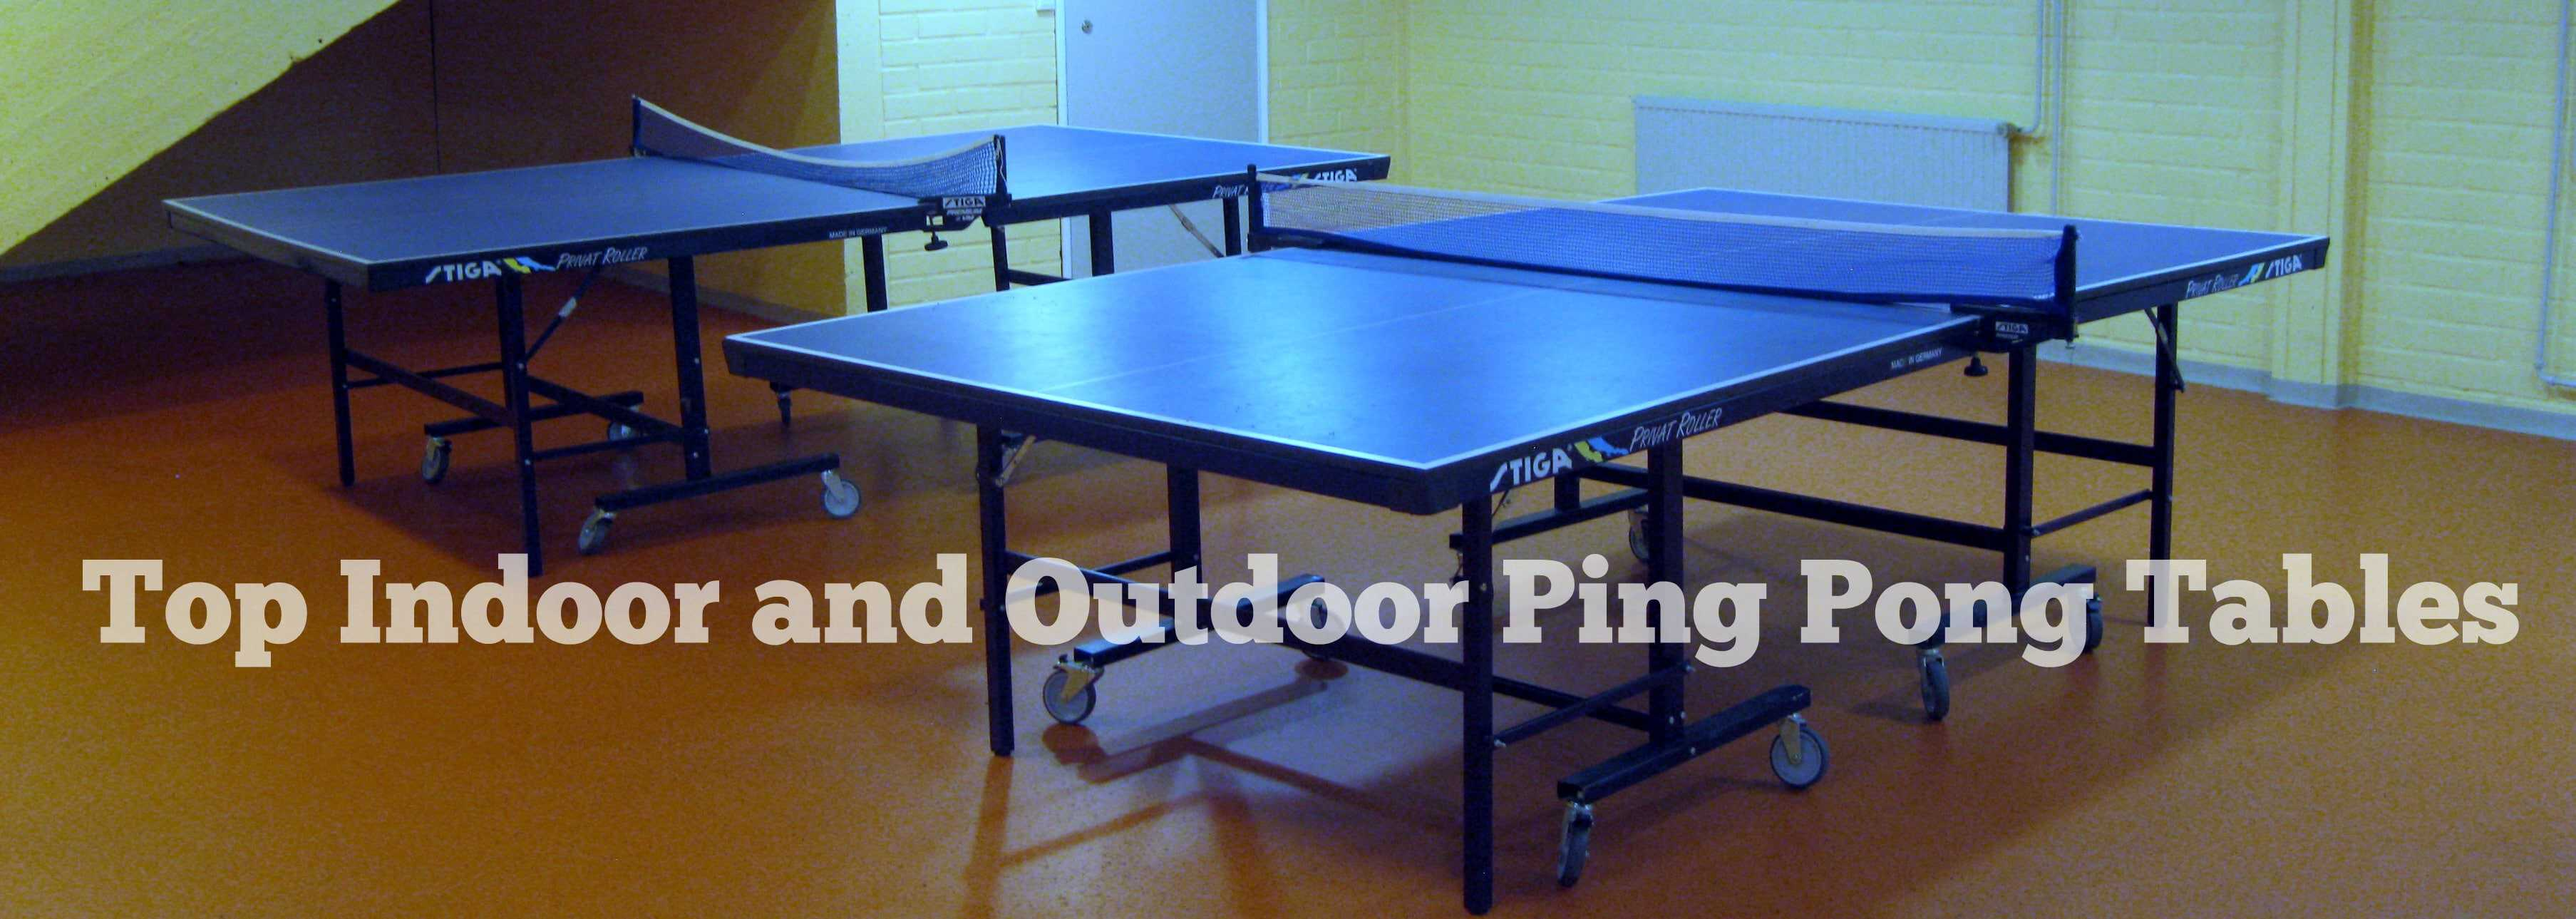 Best Table tennis tables review